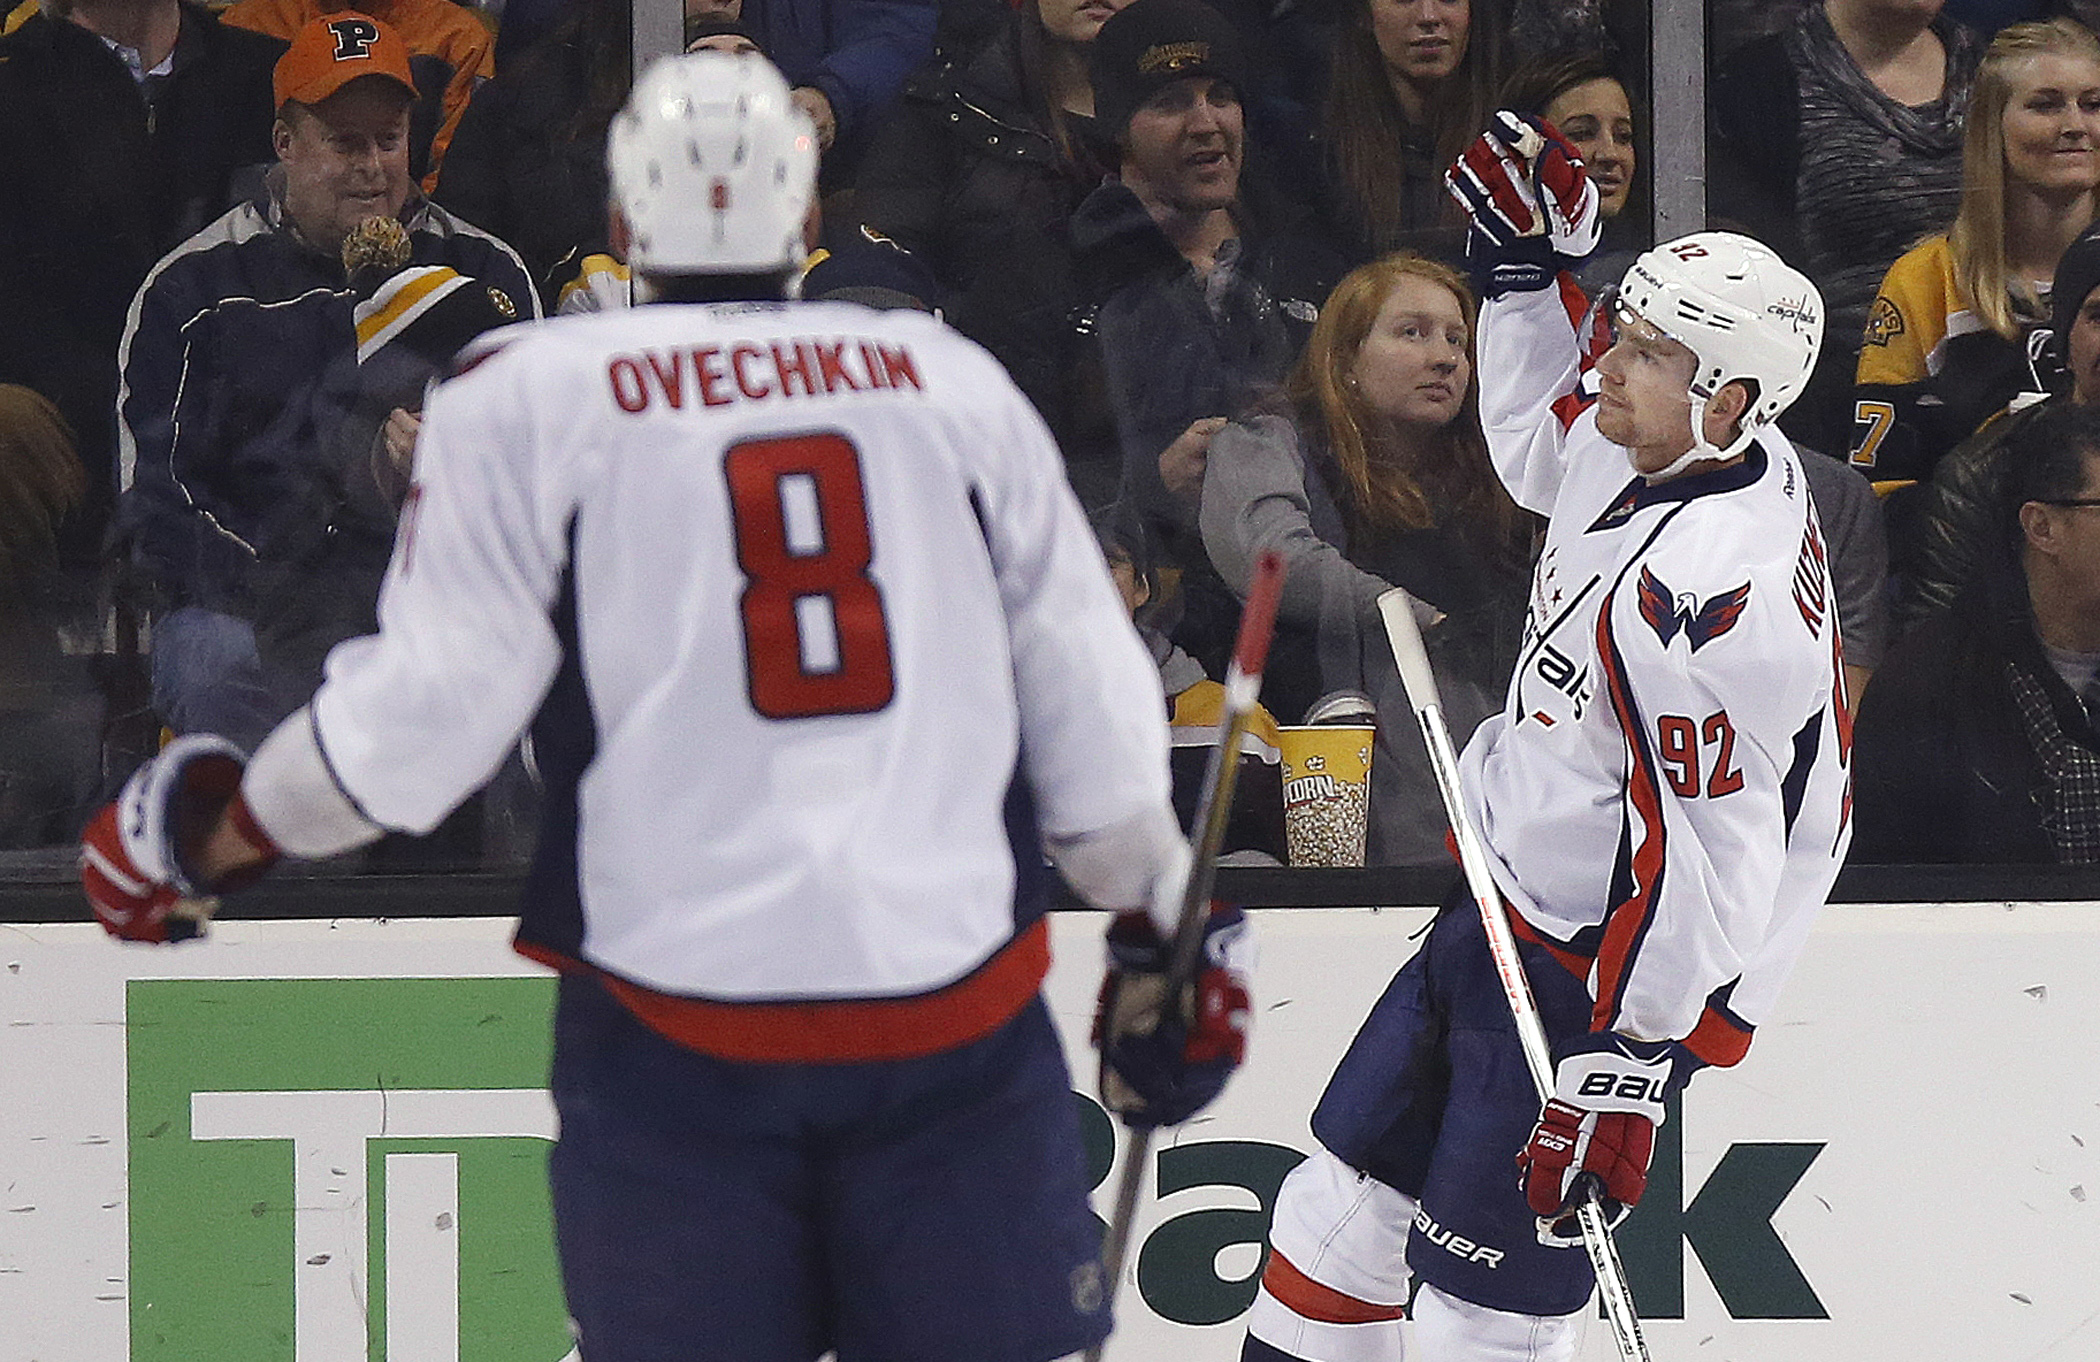 Washington Capitals' Evgeny Kuznetsov (92) celebrates his goal as teammate Alex Ovechkin (8) watches during the second period of an NHL hockey game against the Boston Bruins in Boston, Tuesday, Jan. 5, 2016. The Capitals won 3-2. (AP Photo/Michael Dwyer)